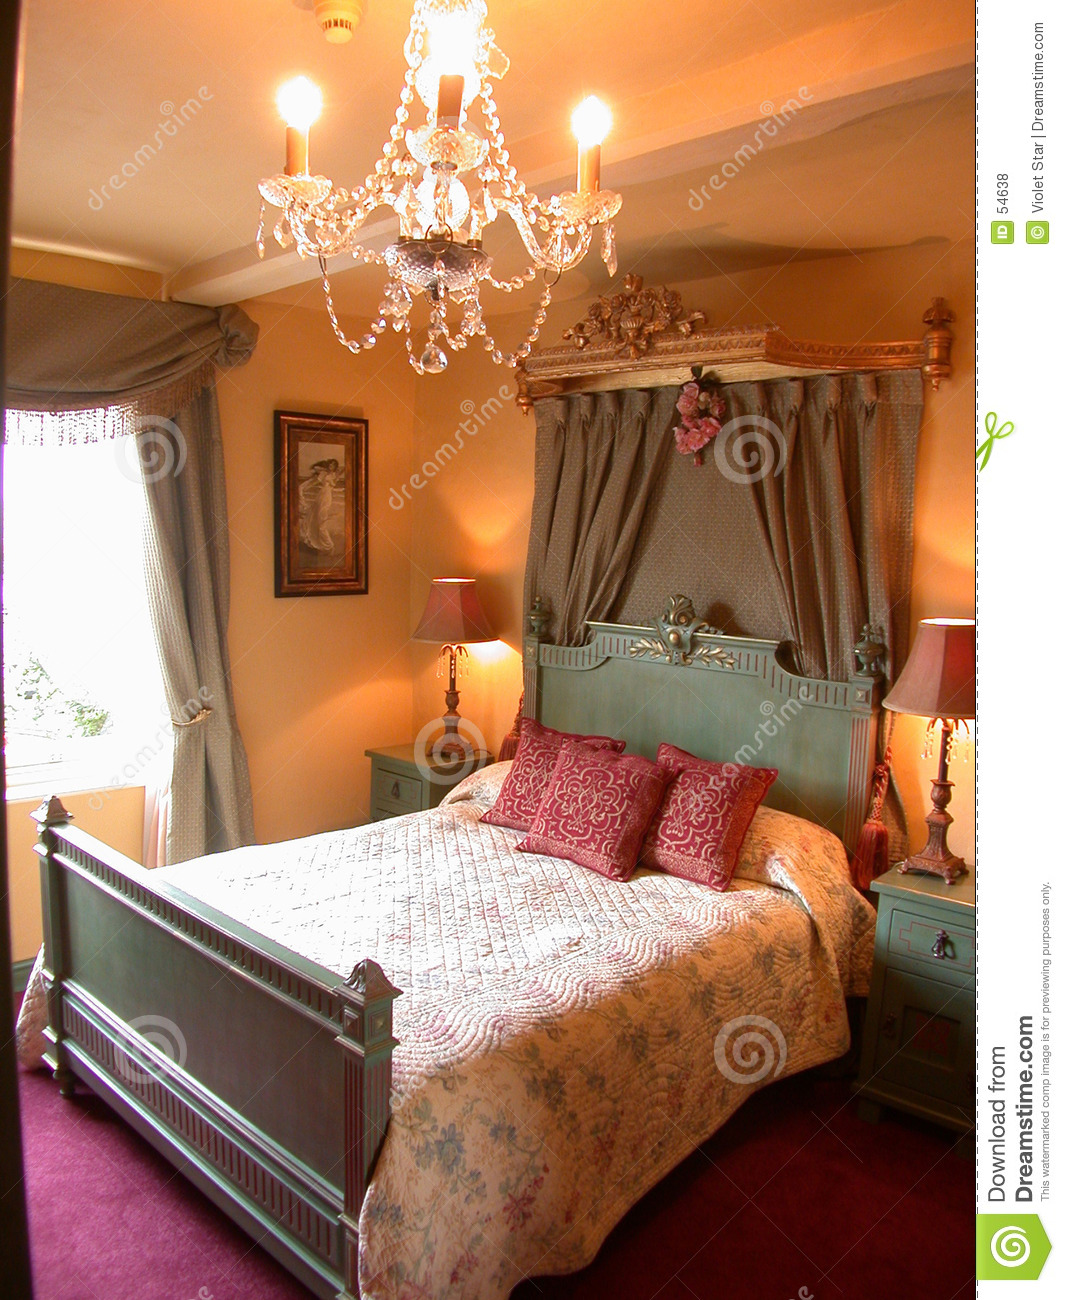 Romantic Bedroom Royalty Free Stock Photos Image 54638